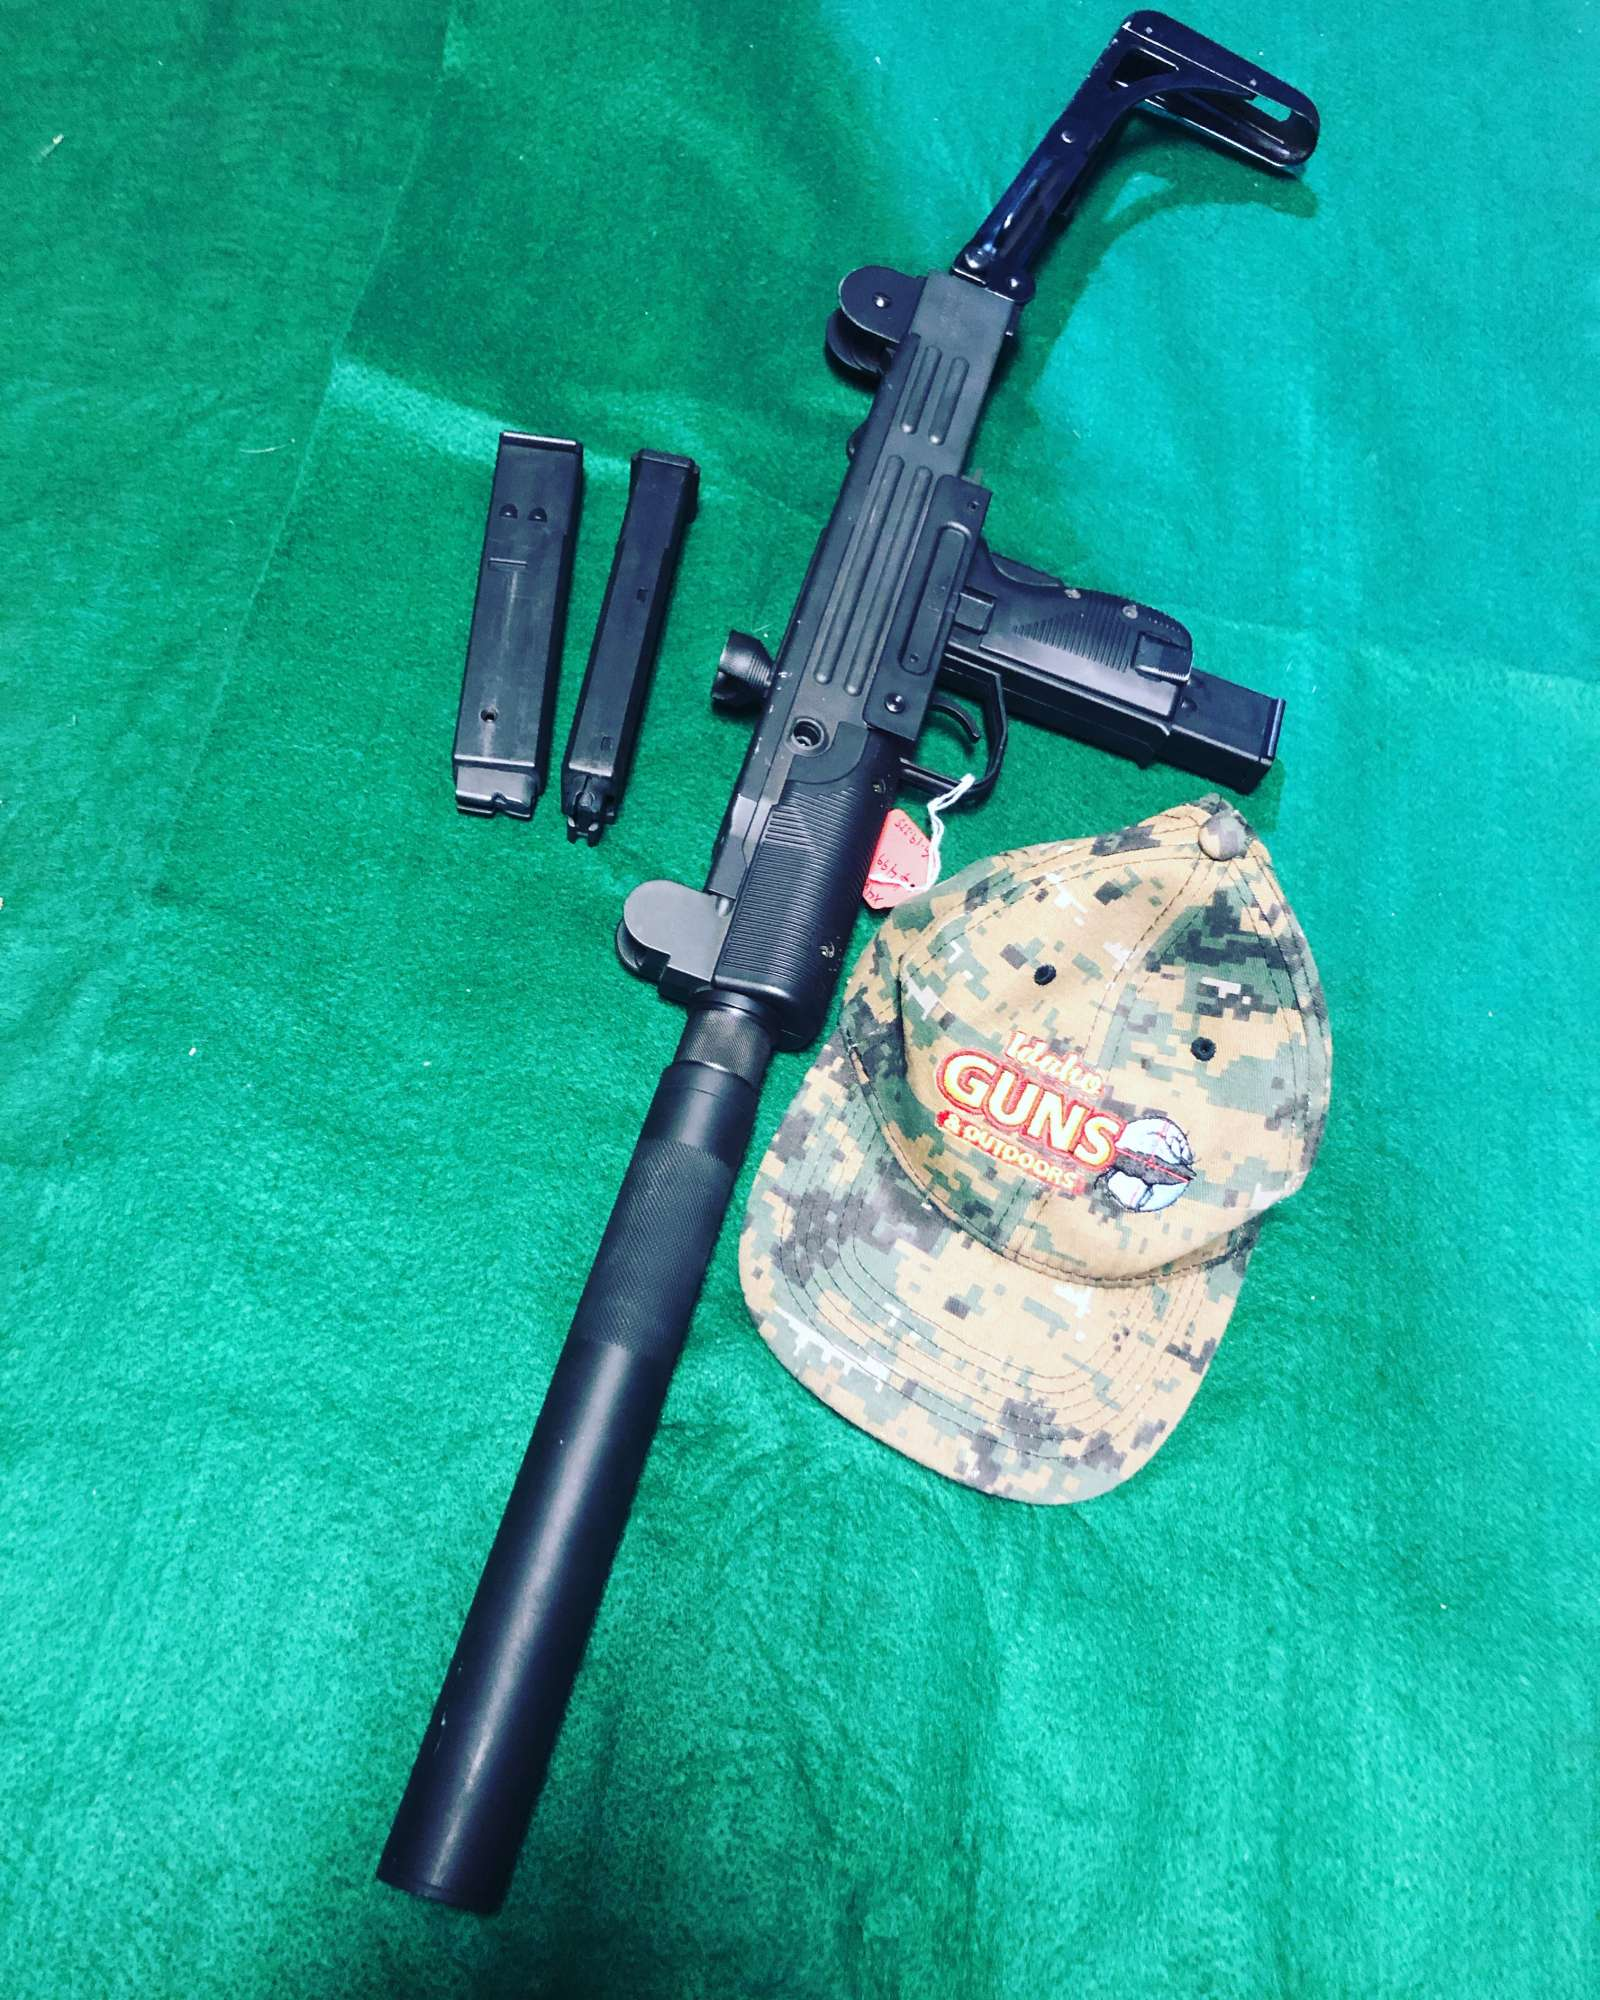 IWI UZI 22LR $499 EXCELLENT CALL STORE TO PURCHASE 208 3781600